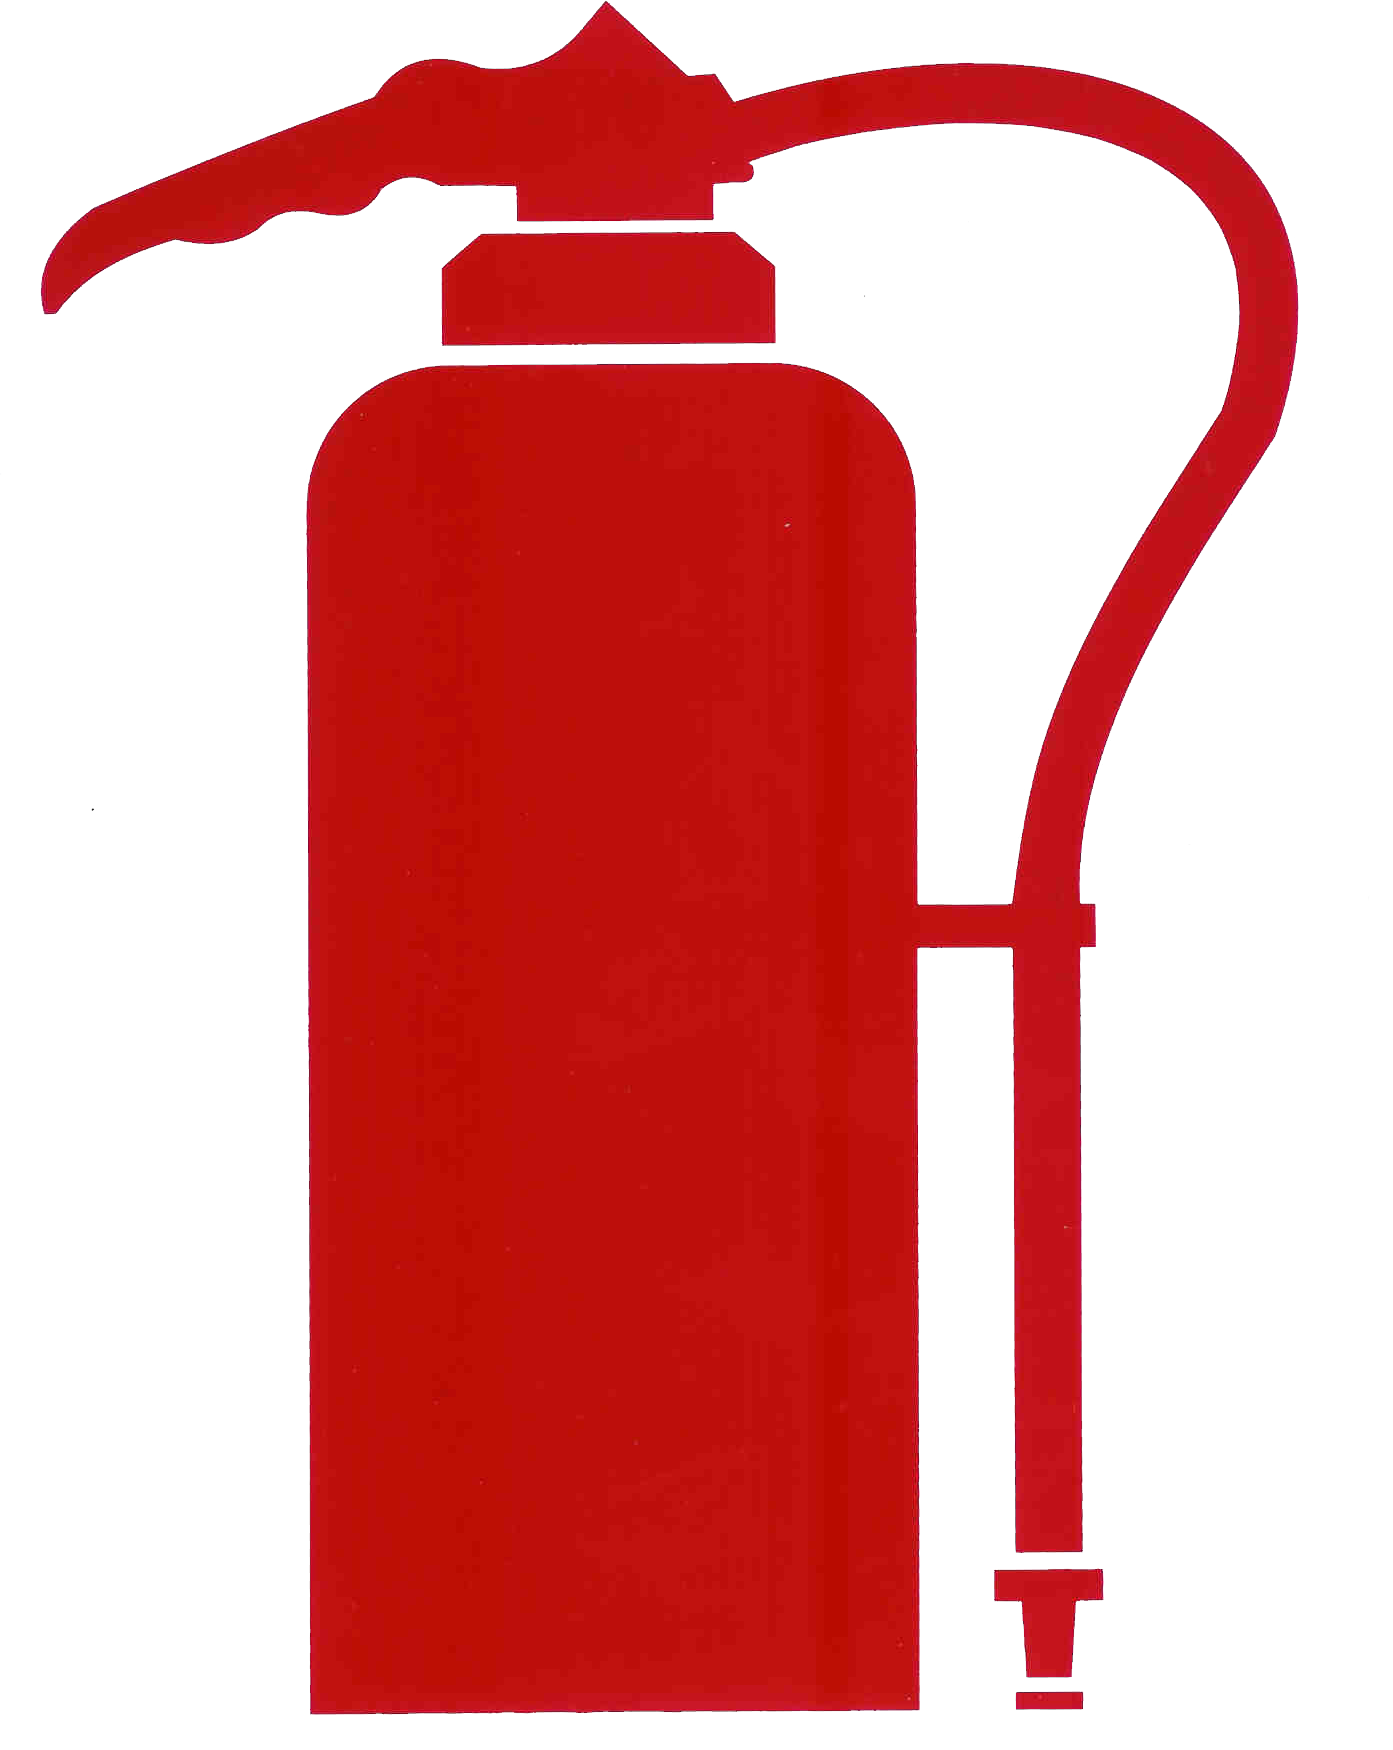 Best Fire Extinguisher For Home Kitchen